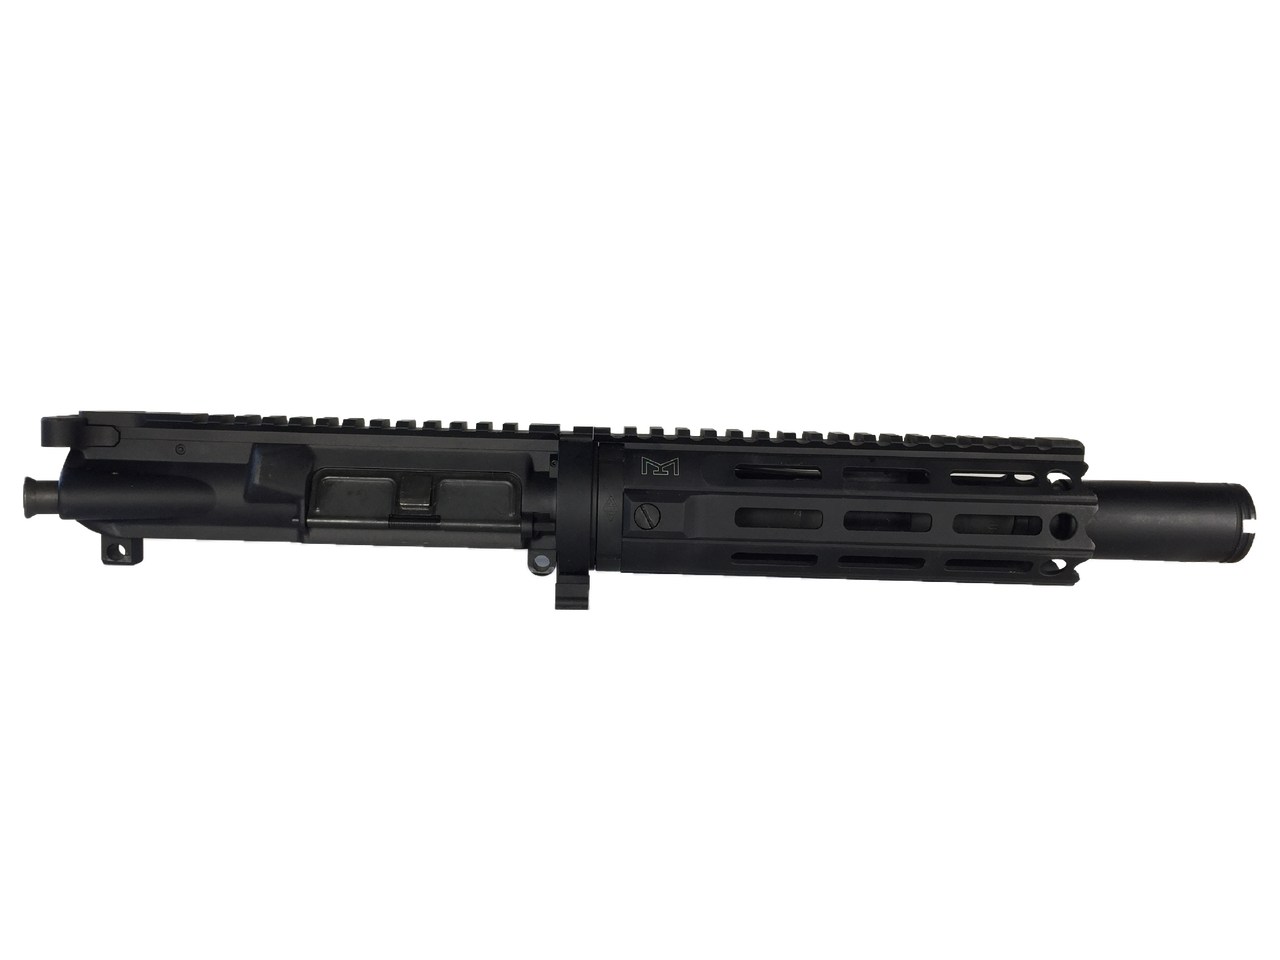 """MDX Arms 7.5"""" DOLOS QD Take Down with YHM MR7 Carbine Mlok Handguard, Flash Can Complete Upper"""